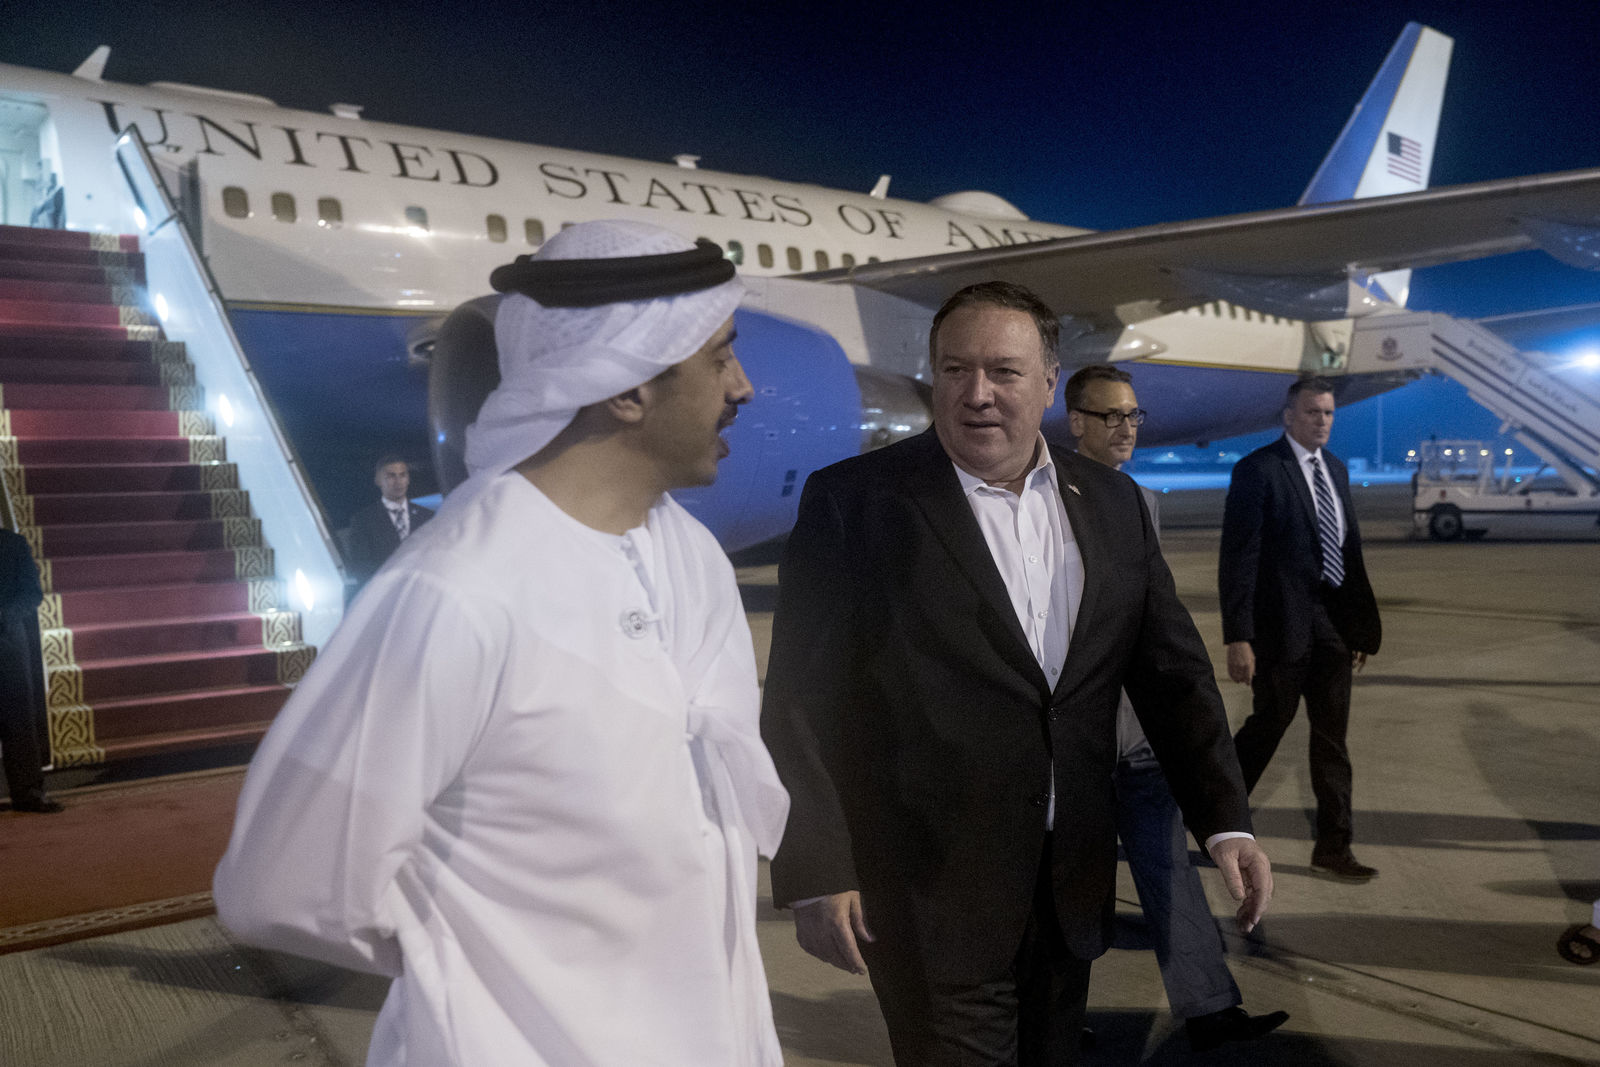 Secretary of State Mike Pompeo, center, is greeted by United Arab Emirates Foreign Minister Sheikh Abdullah bin Zayed Al Nahyan, left, as he arrives at Abu Dhabi International Airport in Abu Dhabi?, United Arab Emirates, Monday, July 9, 2018.  (AP Photo/Andrew Harnik, Pool)